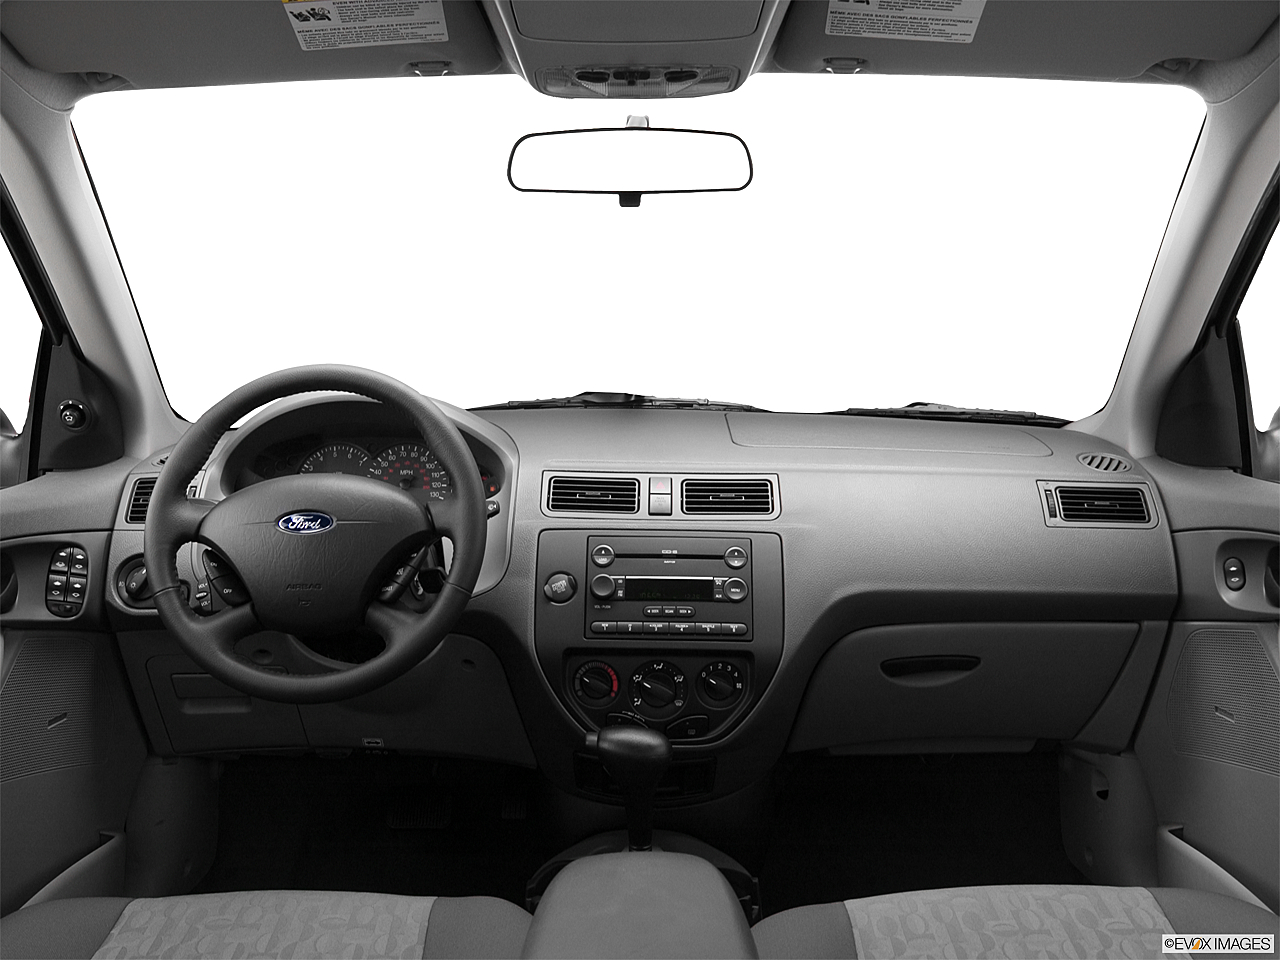 2005 ford focus zx4 se centered wide dash shot